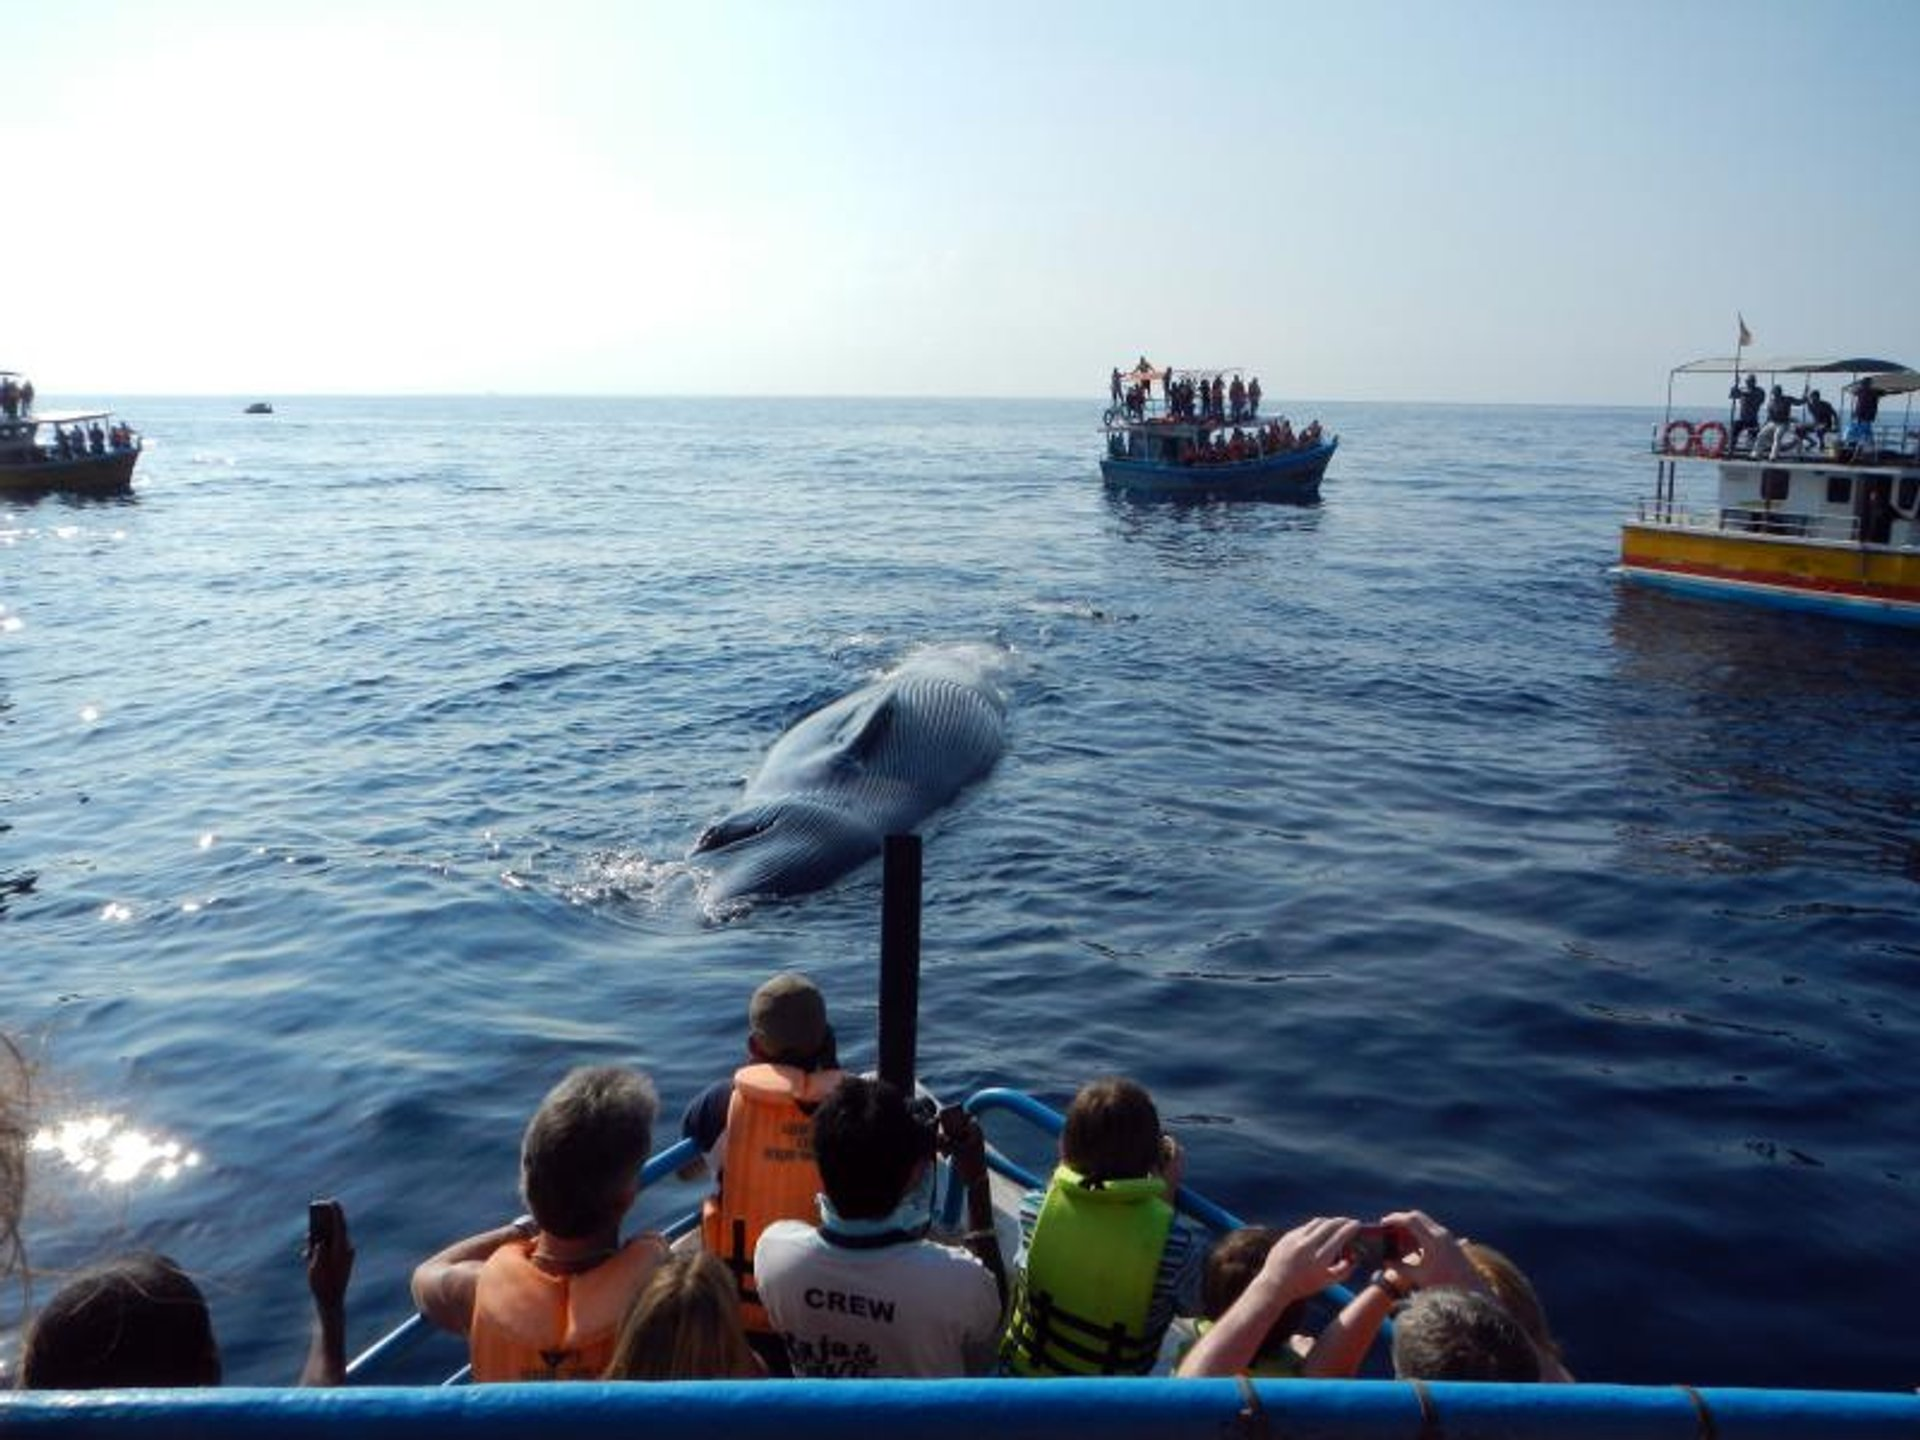 Whale Watching in Sri Lanka 2020 - Best Time